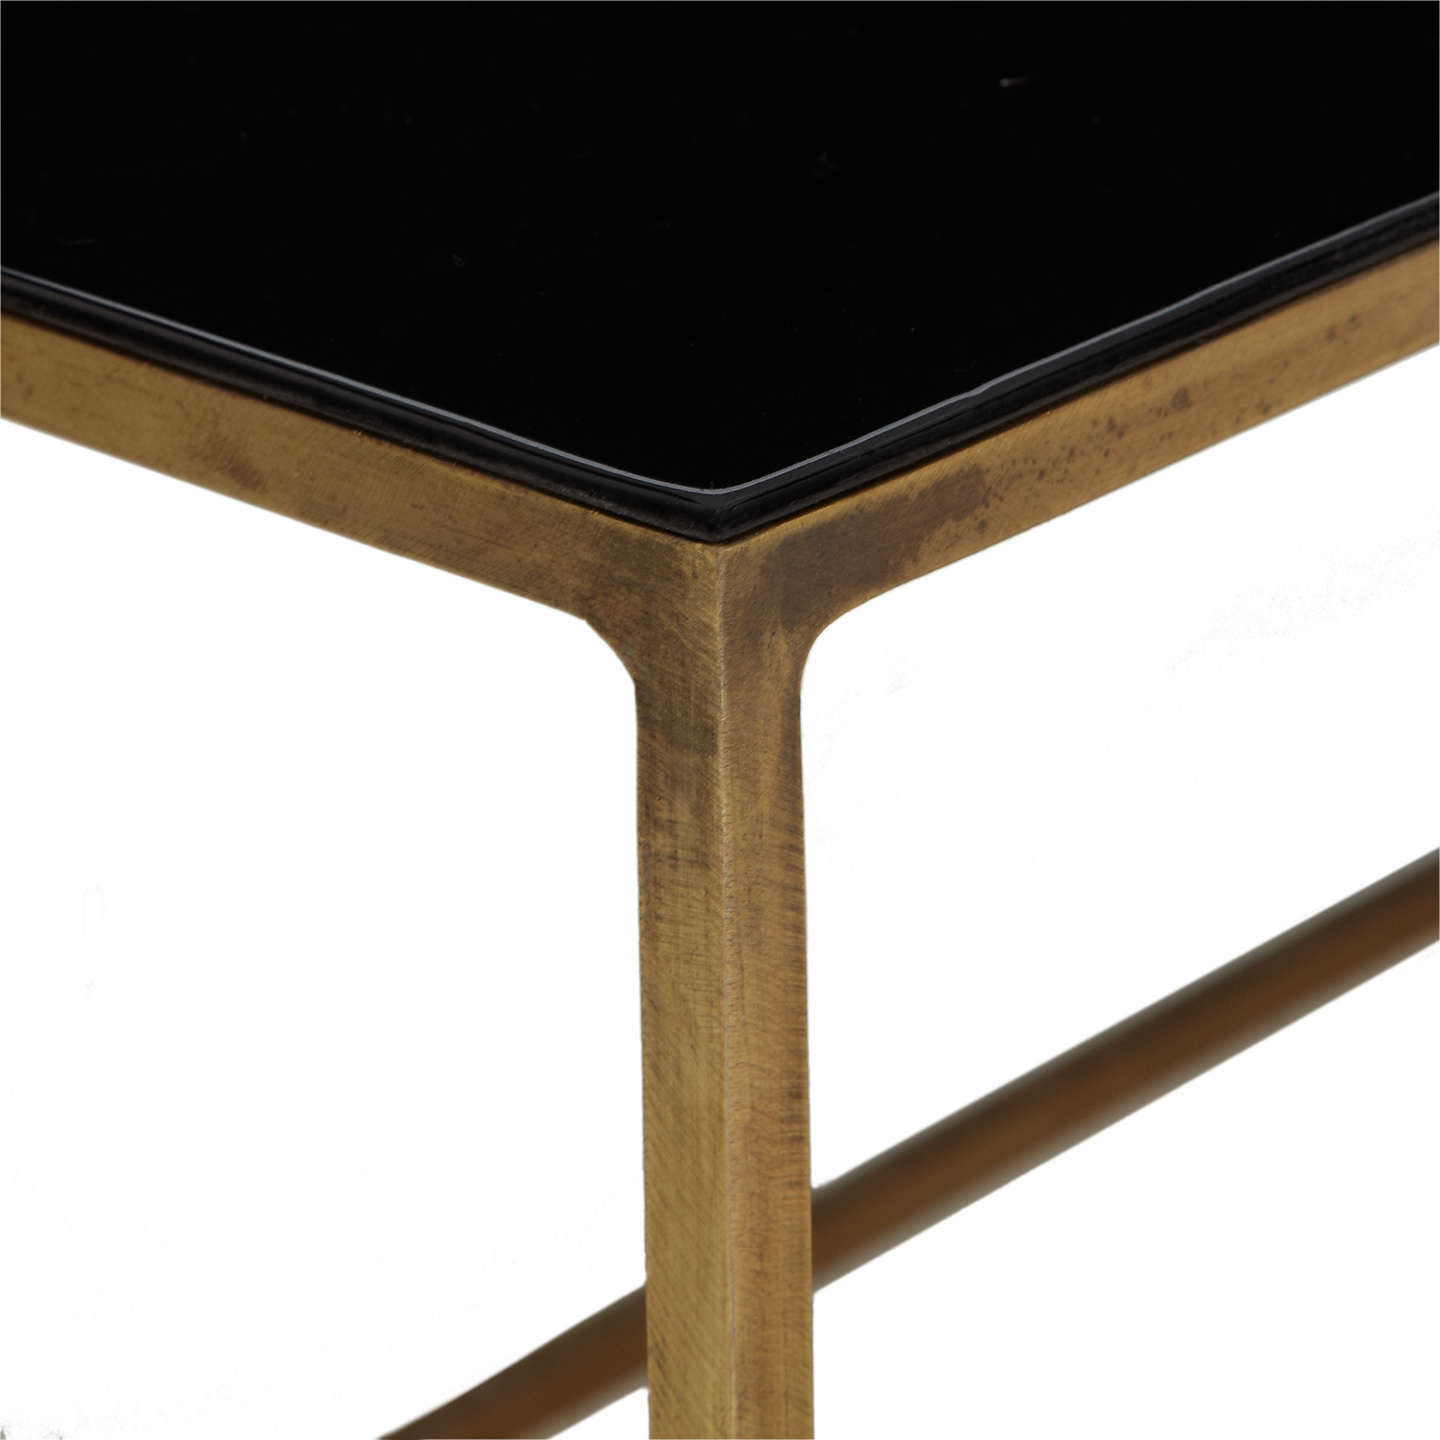 Enamel Tray Coffee Table: Content By Terence Conran Coffee Black Enamel Table And 2